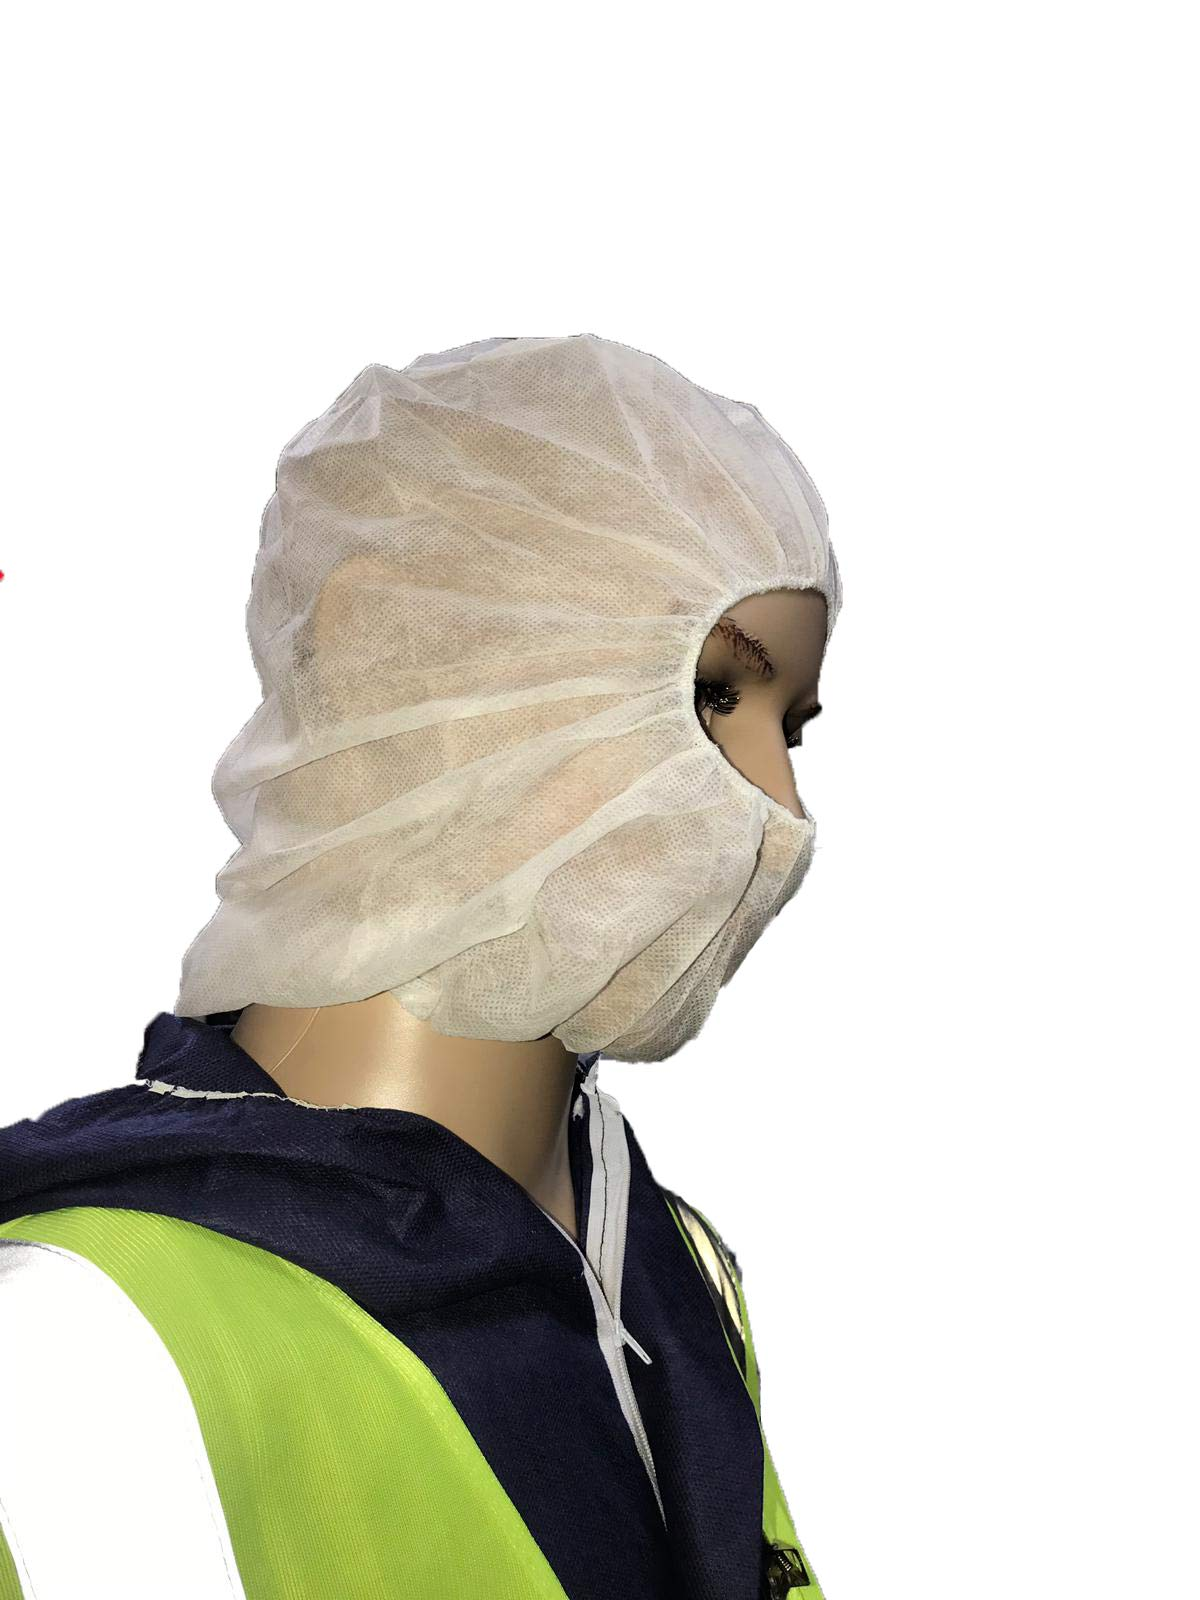 Shield Safety - 21'' - Disposable Personal Protection - Hood - White - 1000 Pieces = 1 MSTR by PackagingSuppliesByMail (Image #2)